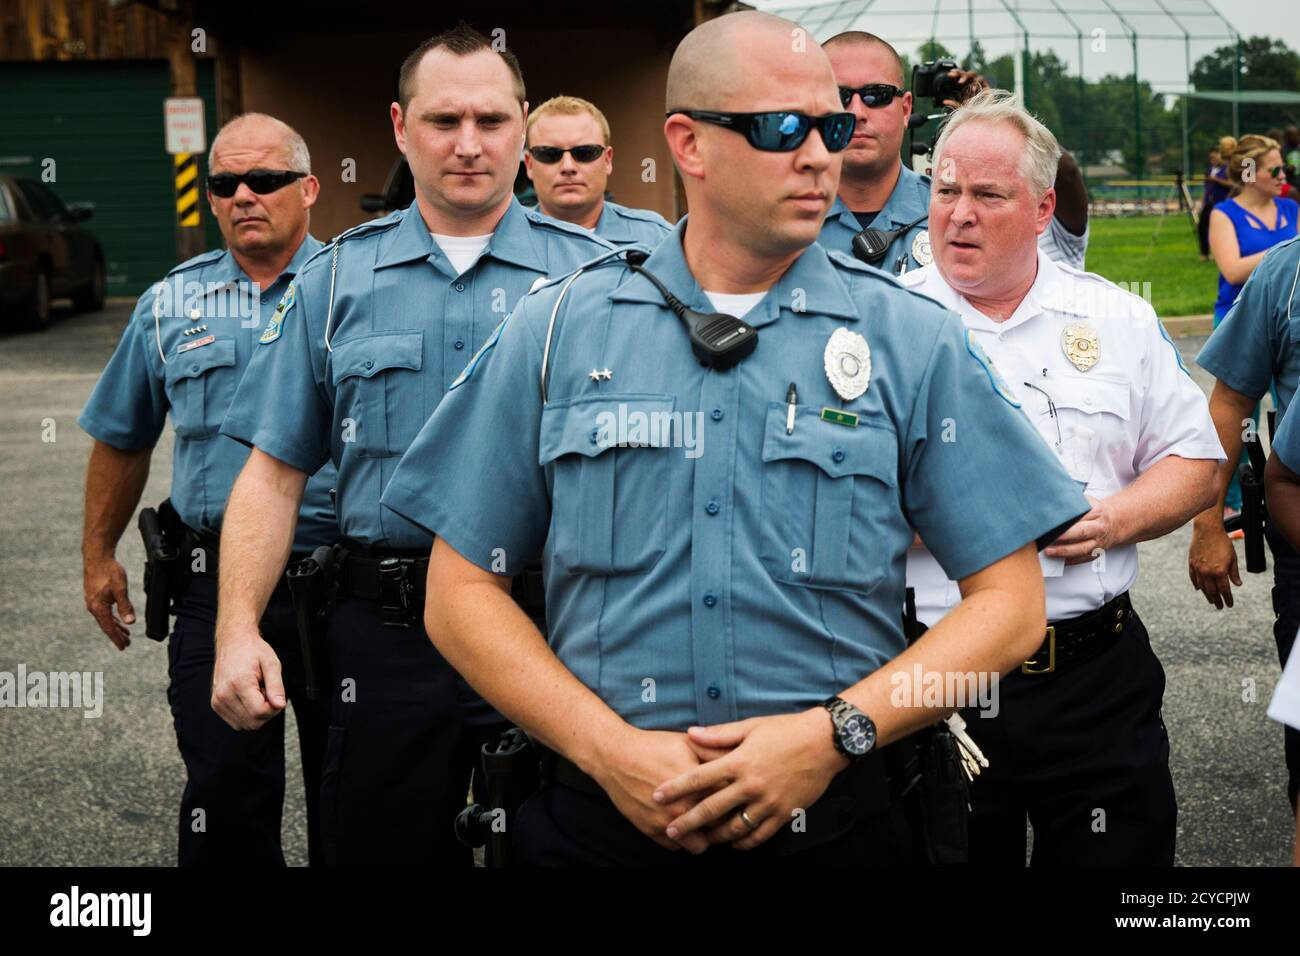 Ferguson Police Chief Thomas Jackson (R) walks away from a media availability regarding his office's handling of the release of information following the shooting of Michael Brown in Ferguson, Missouri August 15, 2014. Picture taken August 15, 2014.  REUTERS/Lucas Jackson (UNITED STATES - Tags: CIVIL UNREST CRIME LAW POLITICS) Banque D'Images